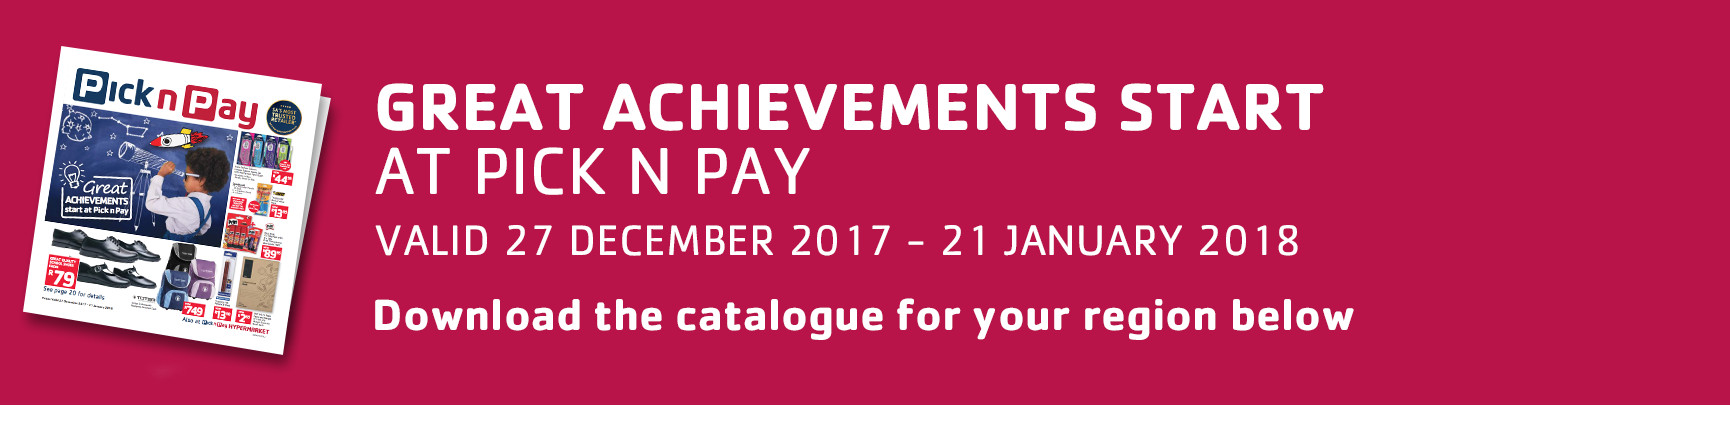 GREAT ACHIEVEMENTS START AT PICK N PAY 2018 (1).jpg